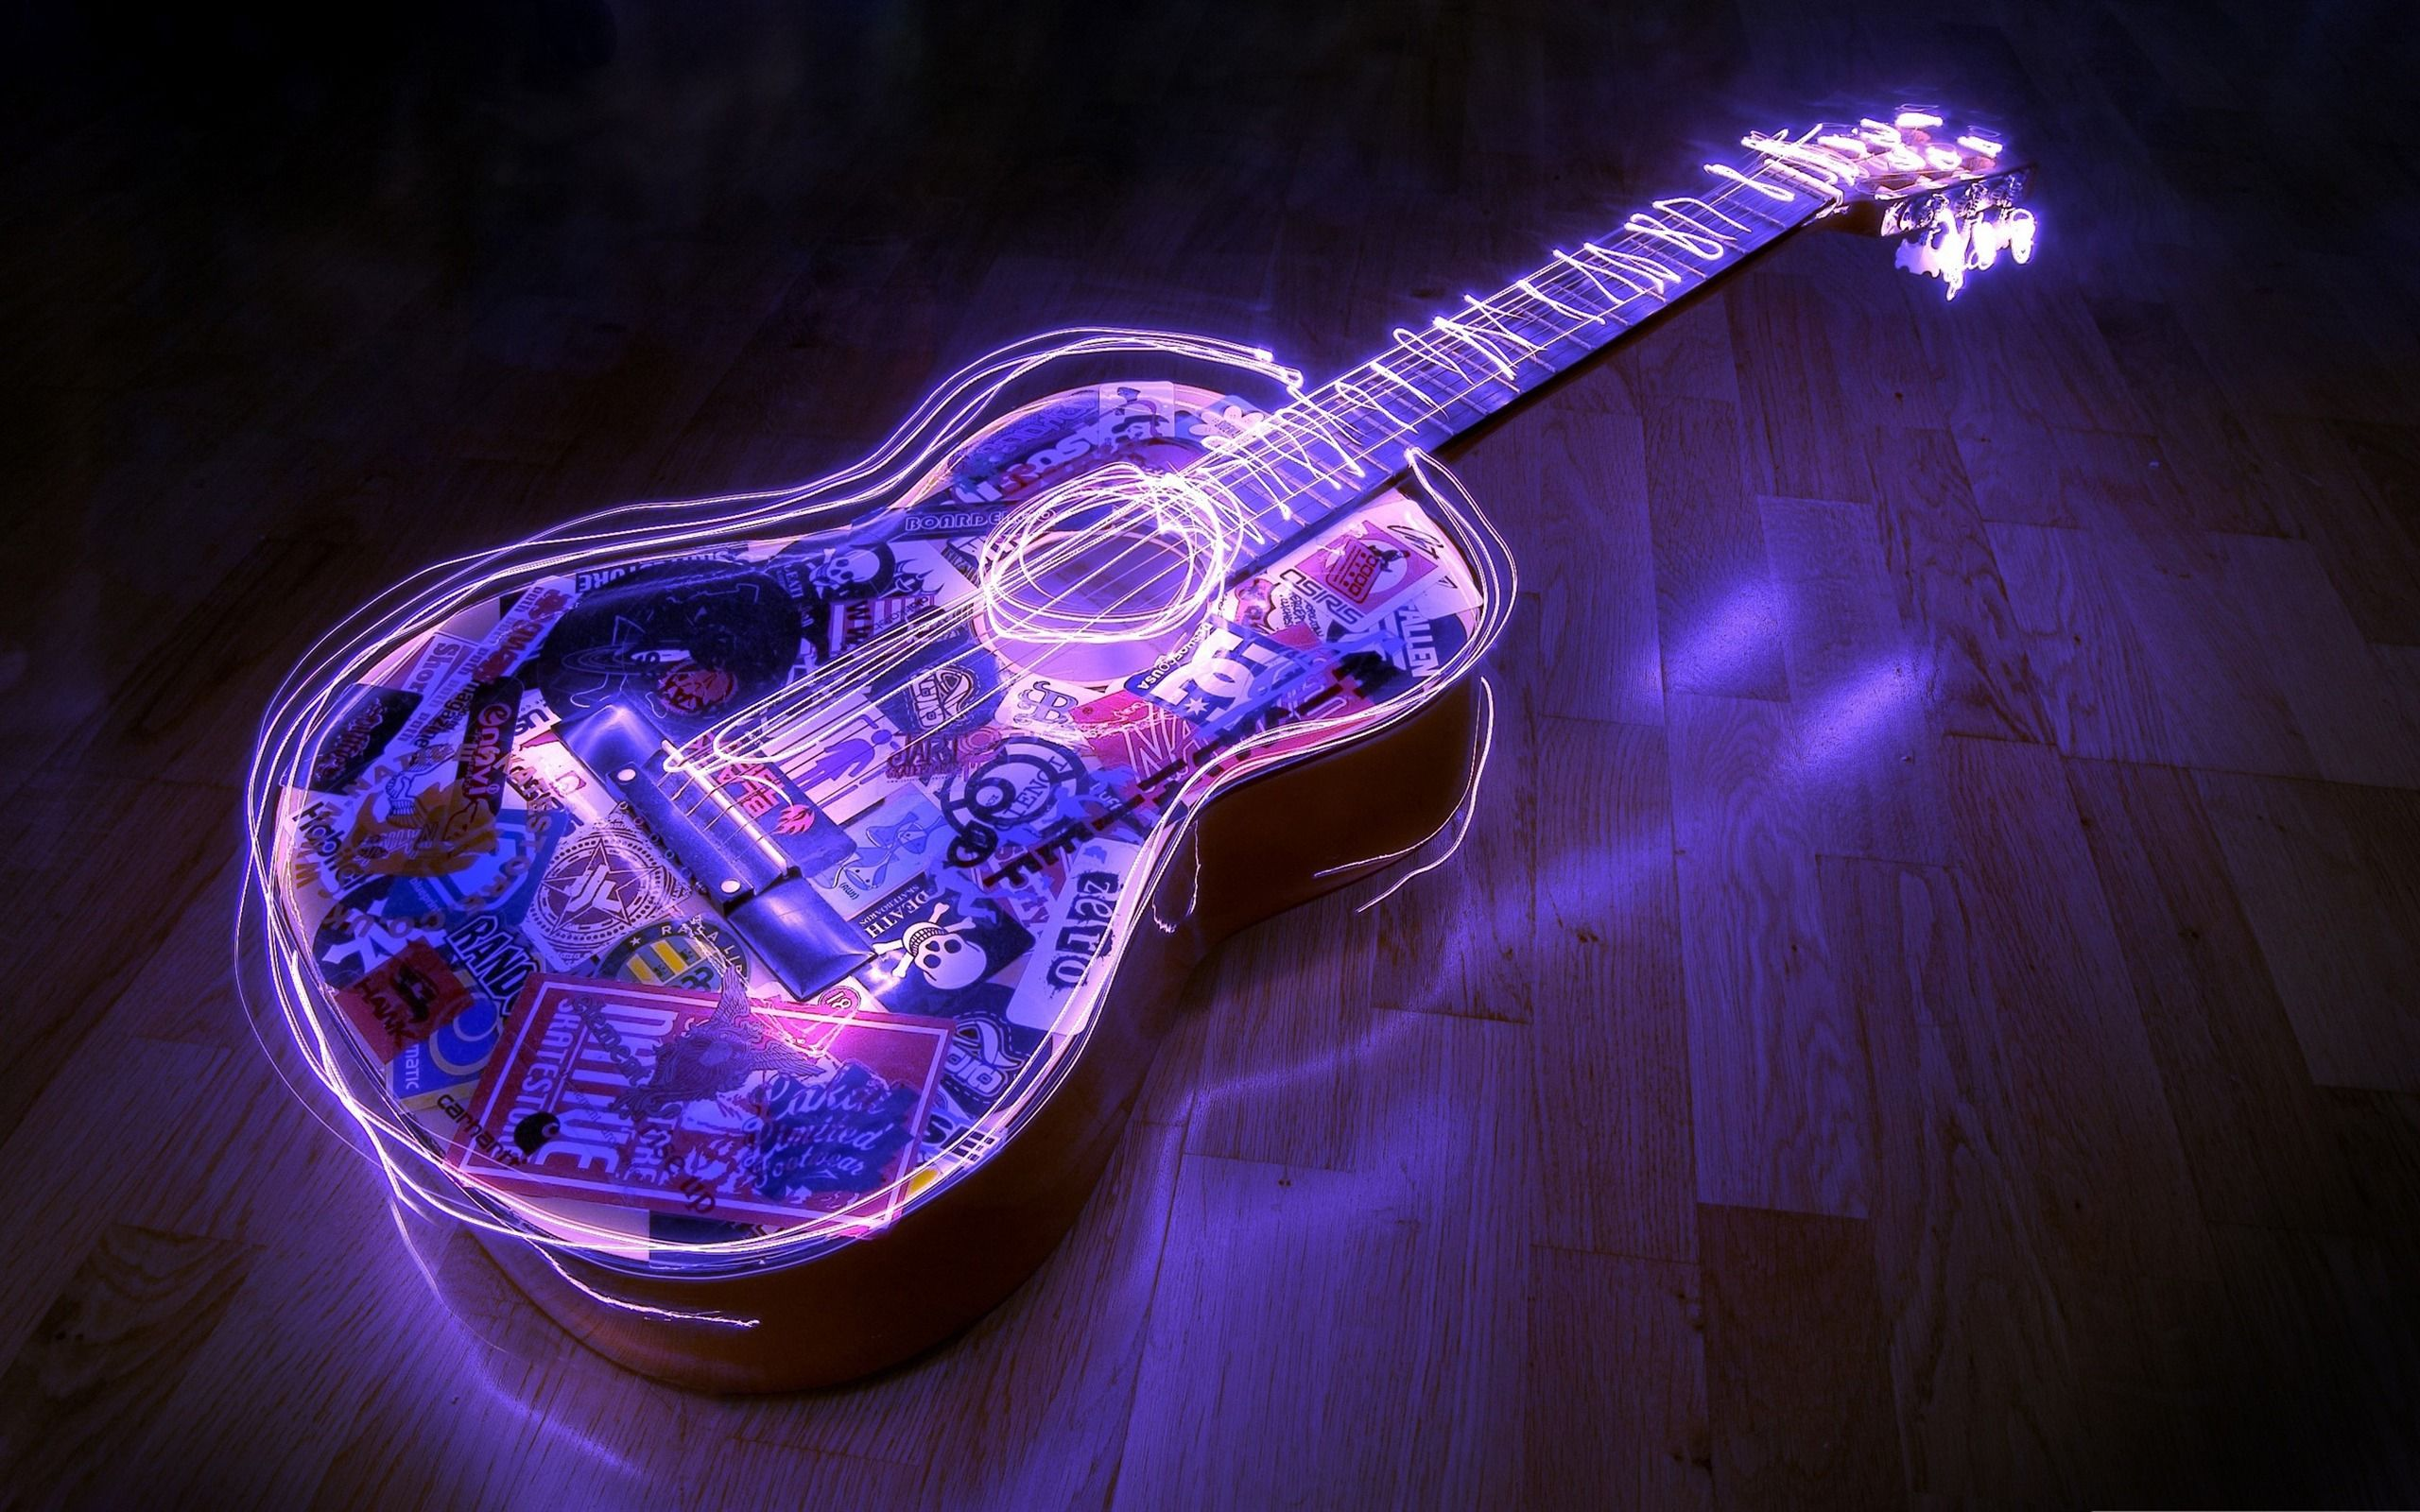 Wallpaper download music - Guitar Creative Art Music Desktop Picture 2560x1600 Wallpaper Download Music Art